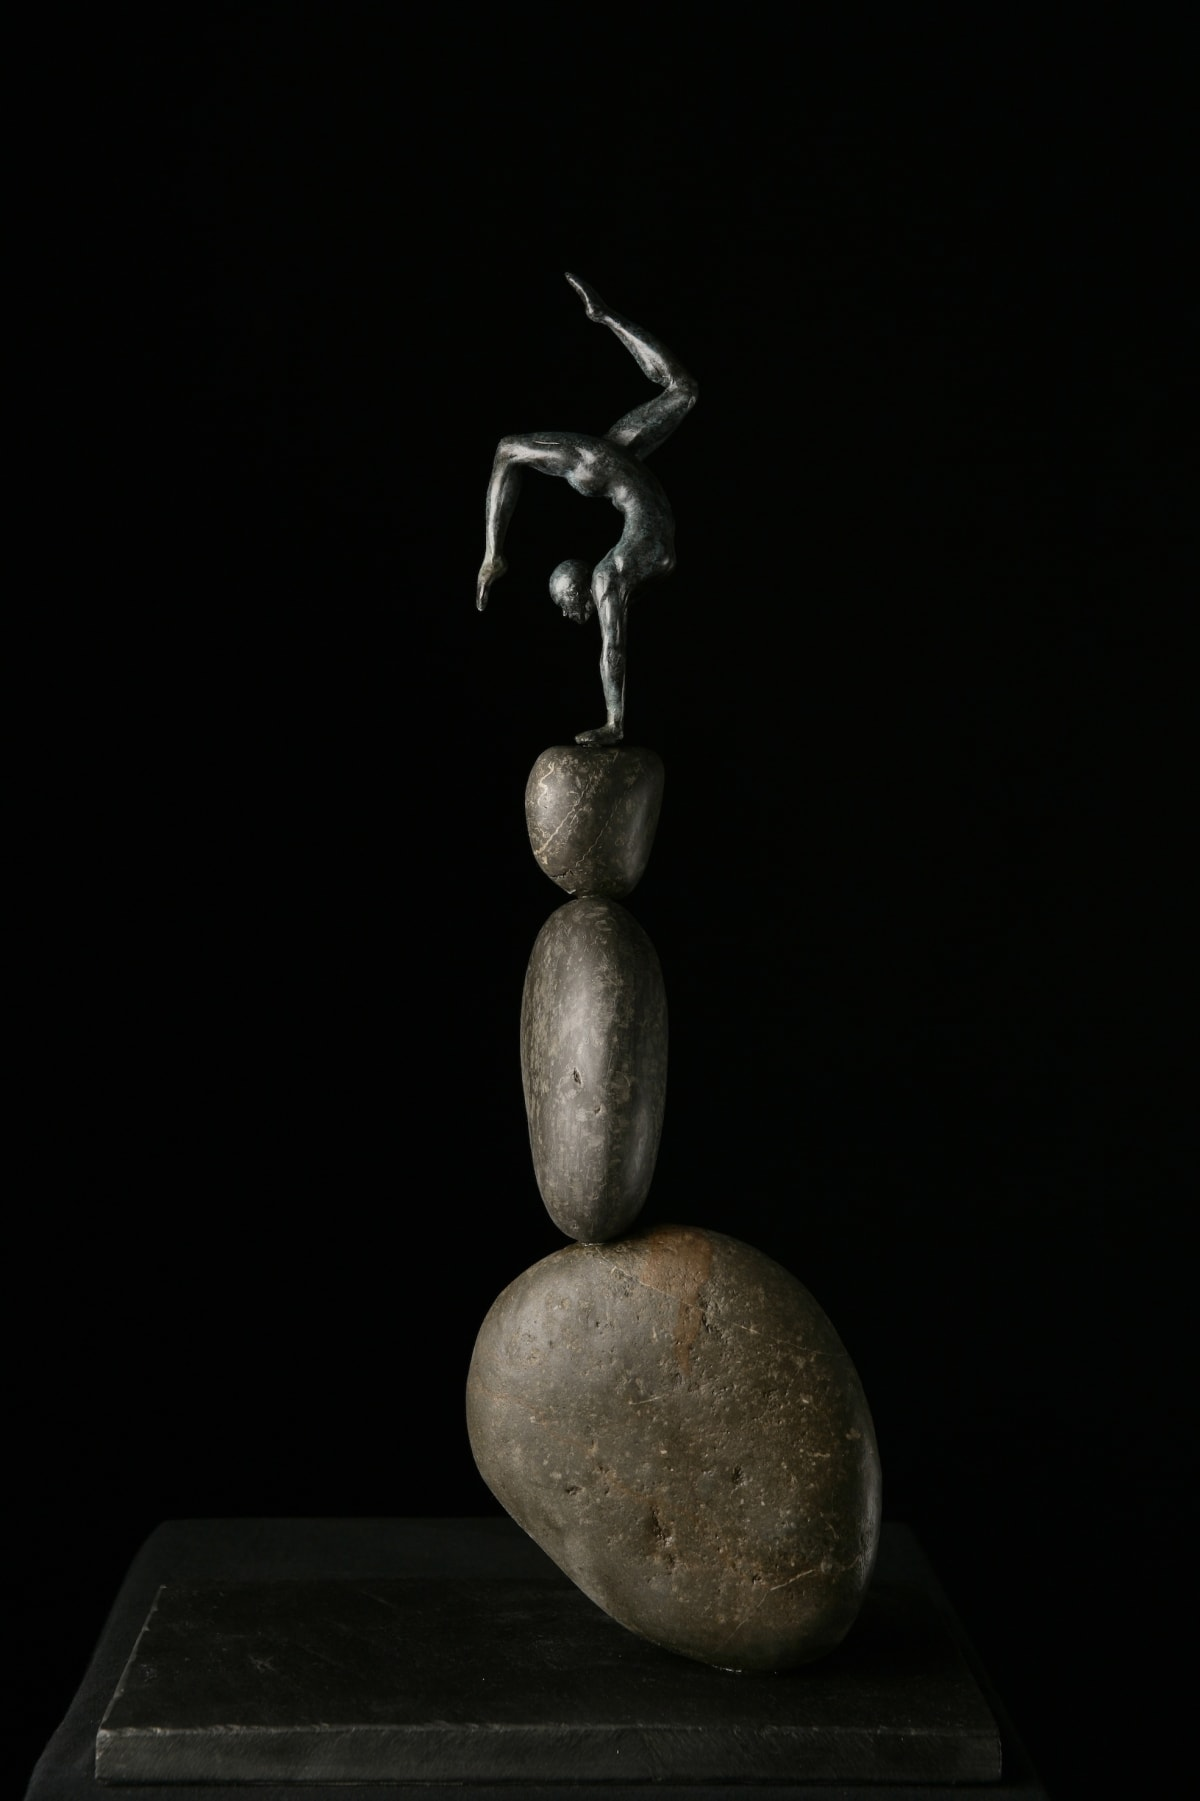 Brendon Murless Balance, 2019 Bronze Sculpture 54 x 30 x 18 cm 21 1/4 x 11 3/4 x 7 1/8 in Edition 6 of 8